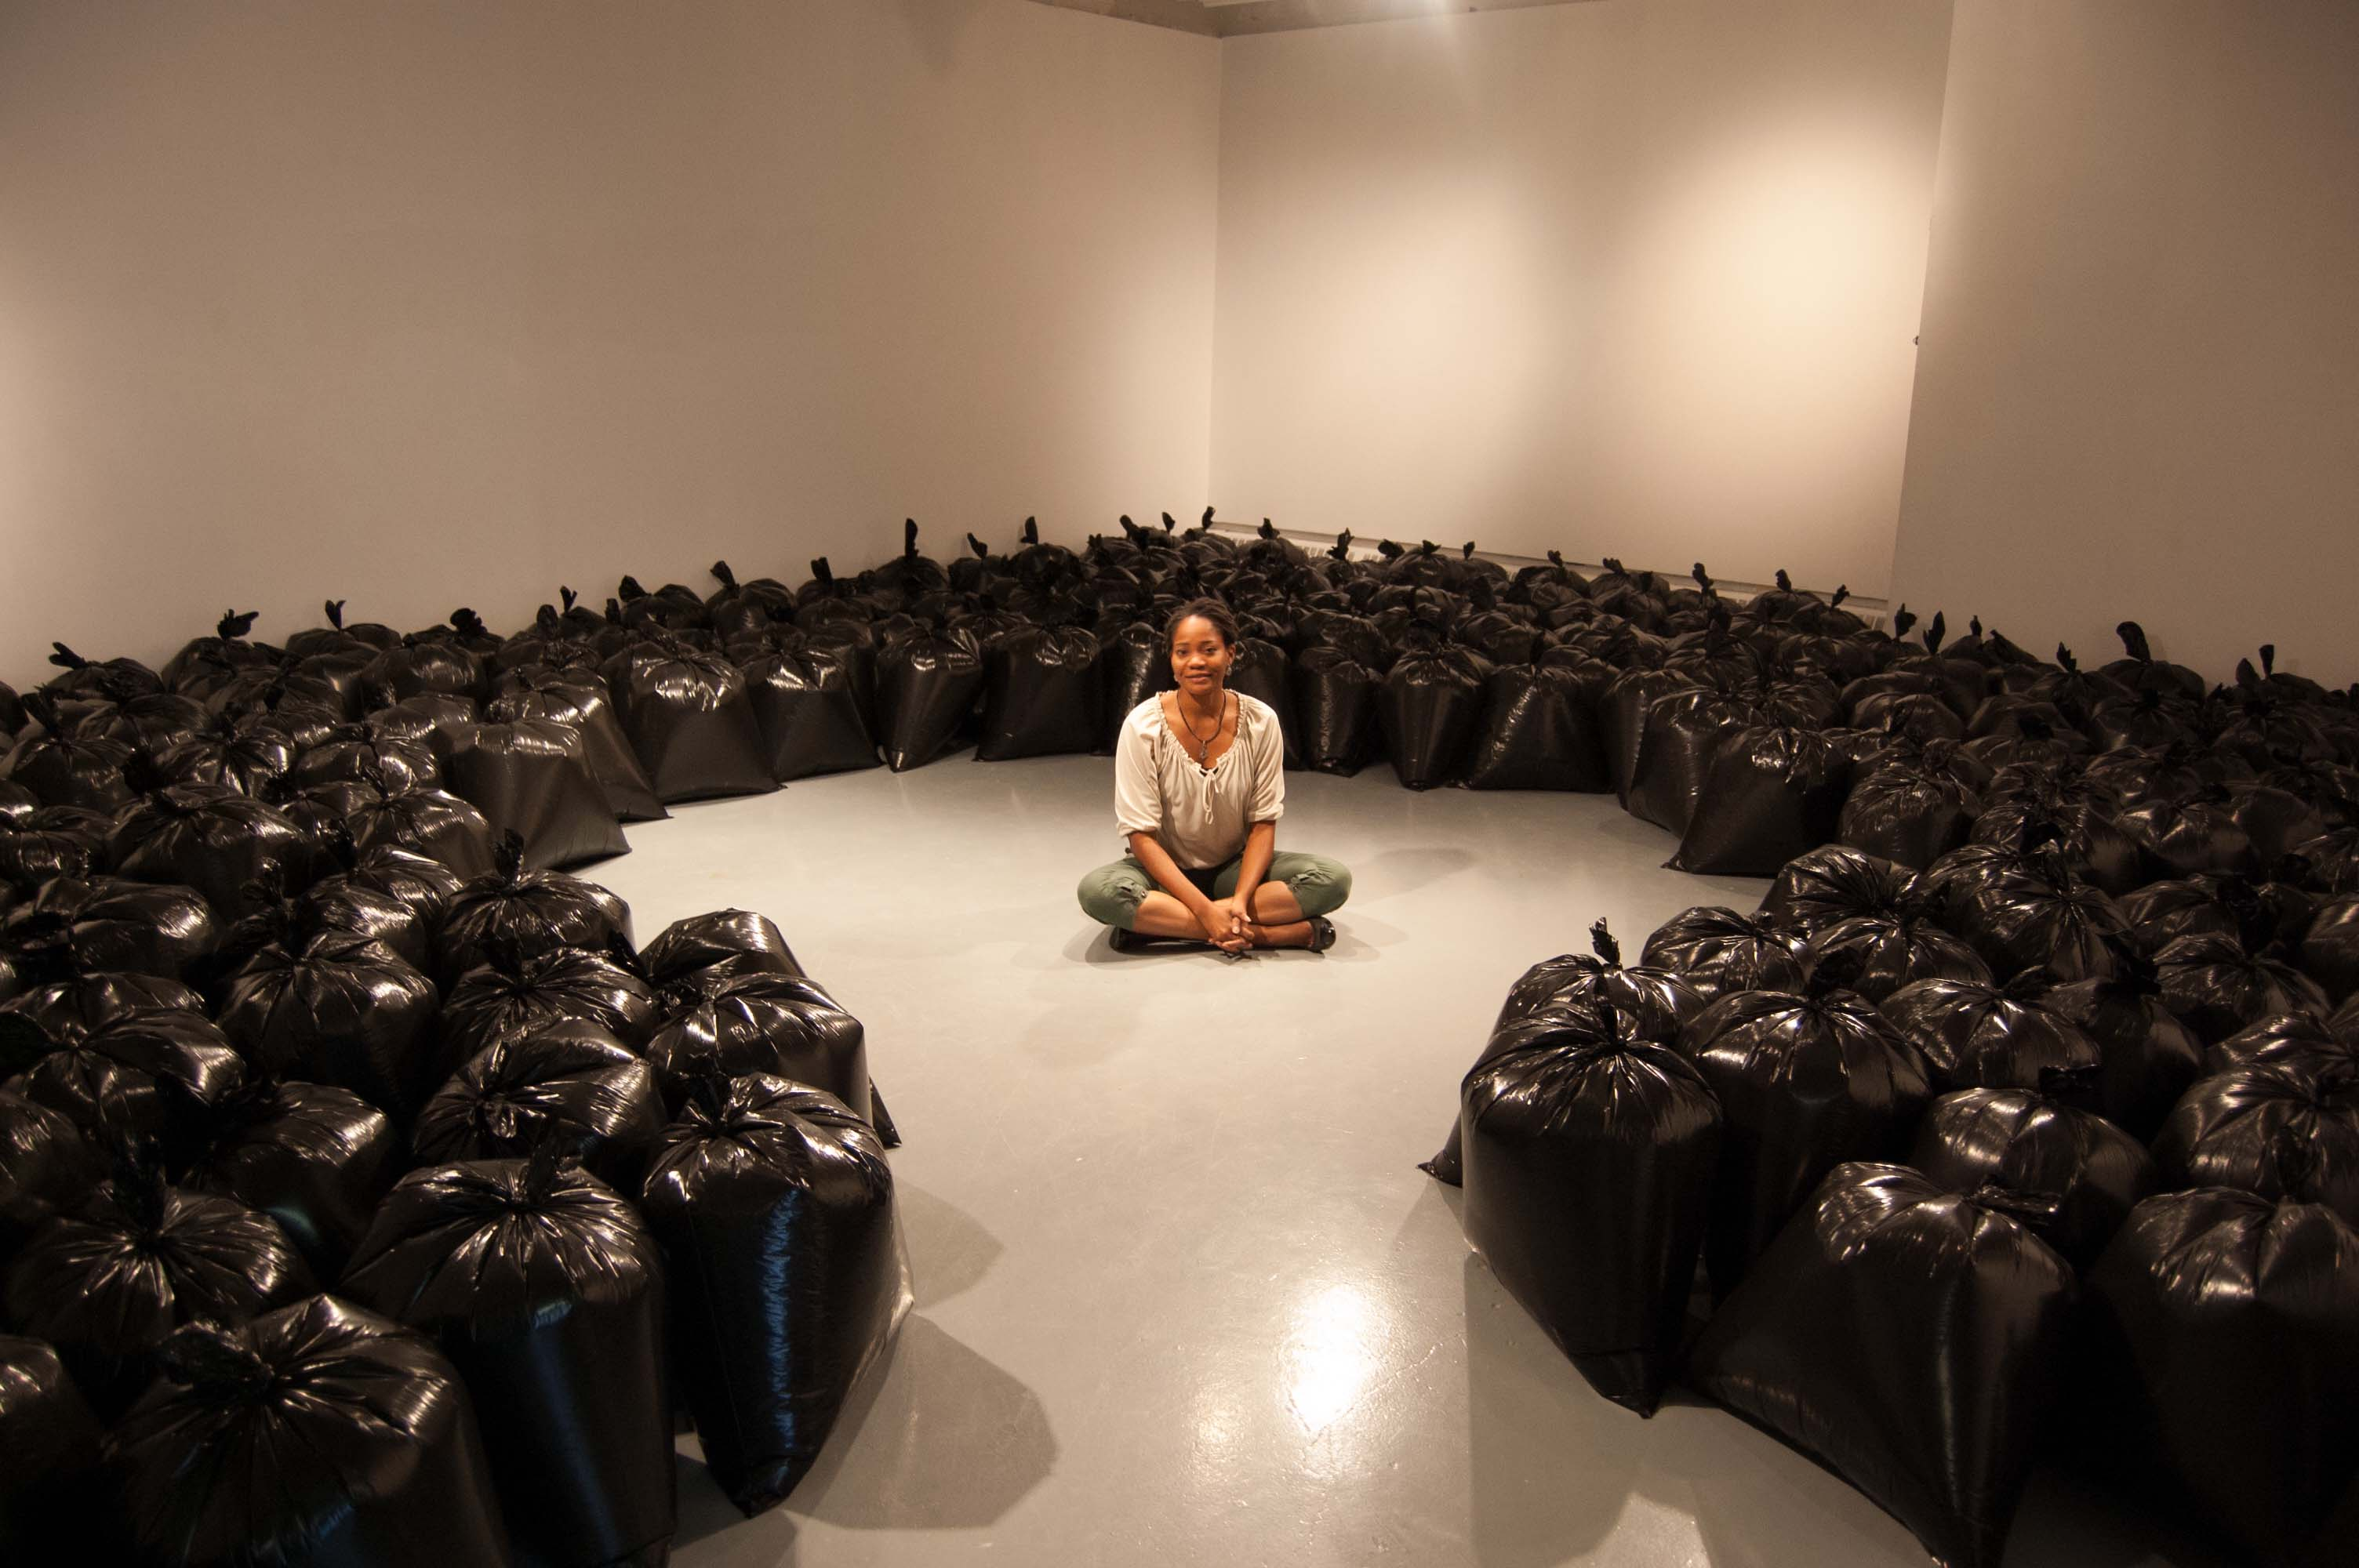 My 290 Bags Full of Nothing (2012)